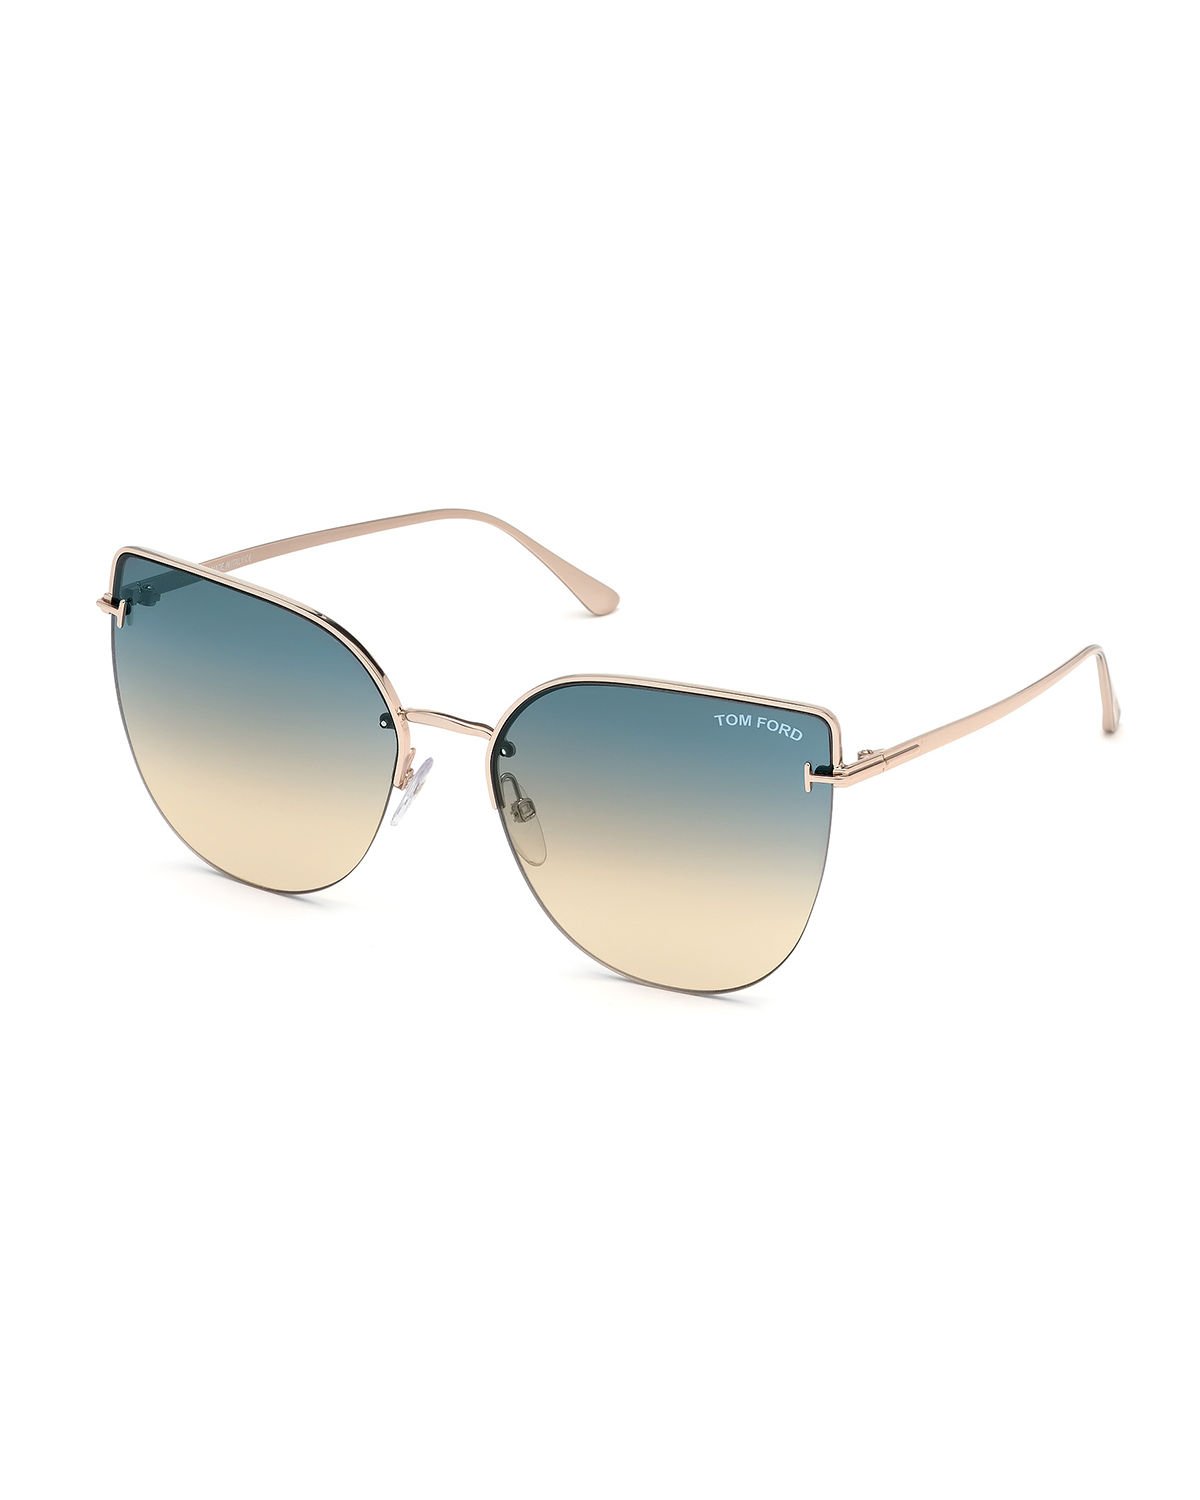 adc56d901e77 Tom Ford Ingrid 60Mm Cat Eye Sunglasses - Rose Gold  Turquoise To Sand